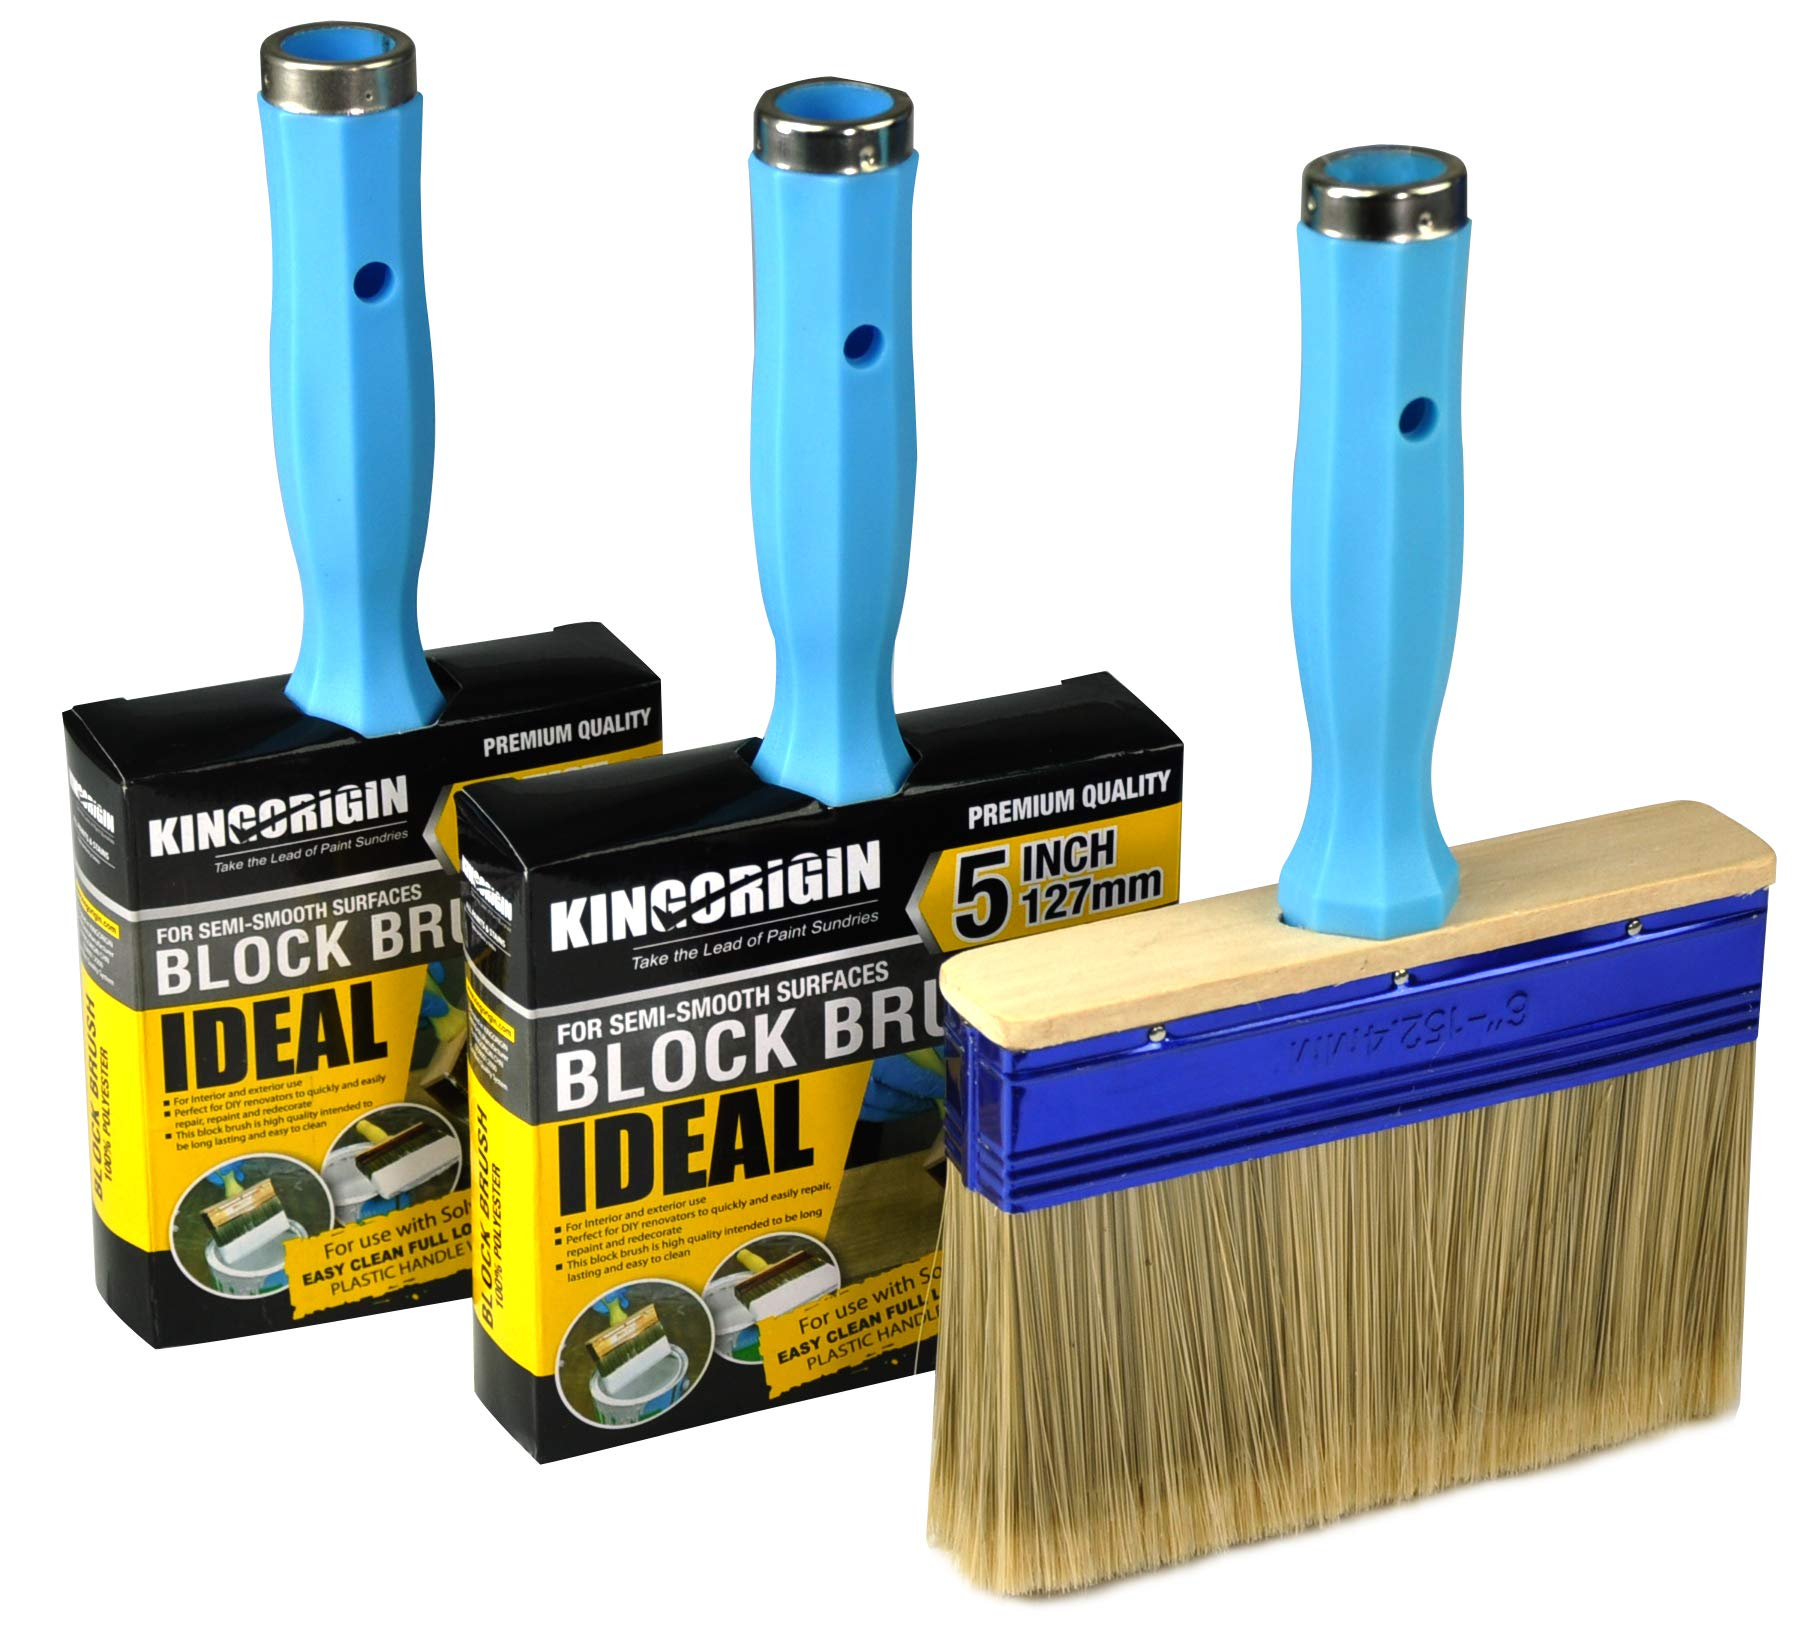 3 Piece (4,5,6inch) Heavy Duty Professional Stain Brush, Paint Brush,Paint Brushes, Double Thick 1.2 inch,Fence Brush,Paint Brush for Walls,Painters Paint Brush,Tool Set,Home Repair Tools,Tool kit by KingOrigin